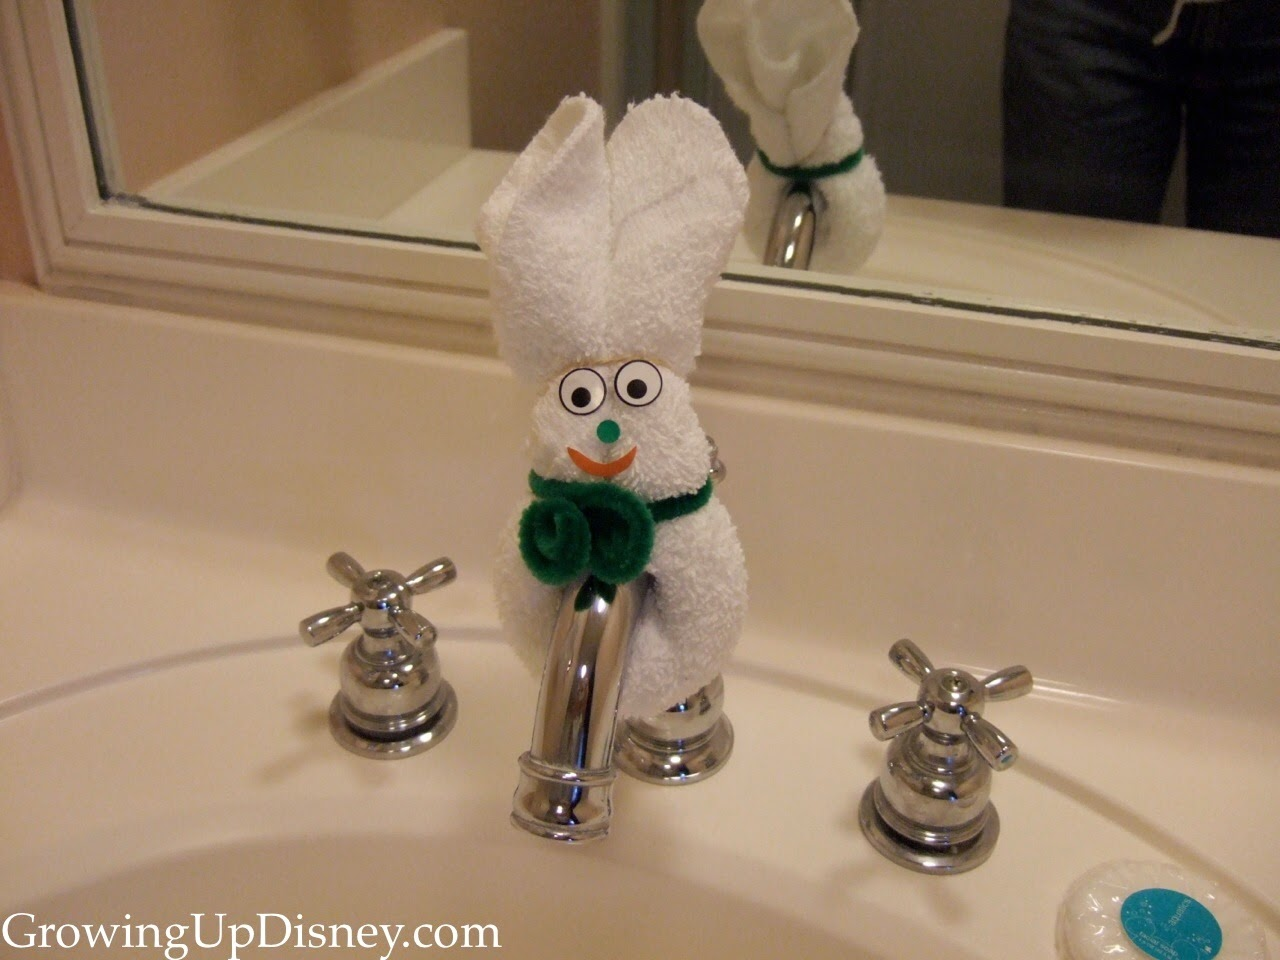 towel animal at Walt Disney World, Old Key West